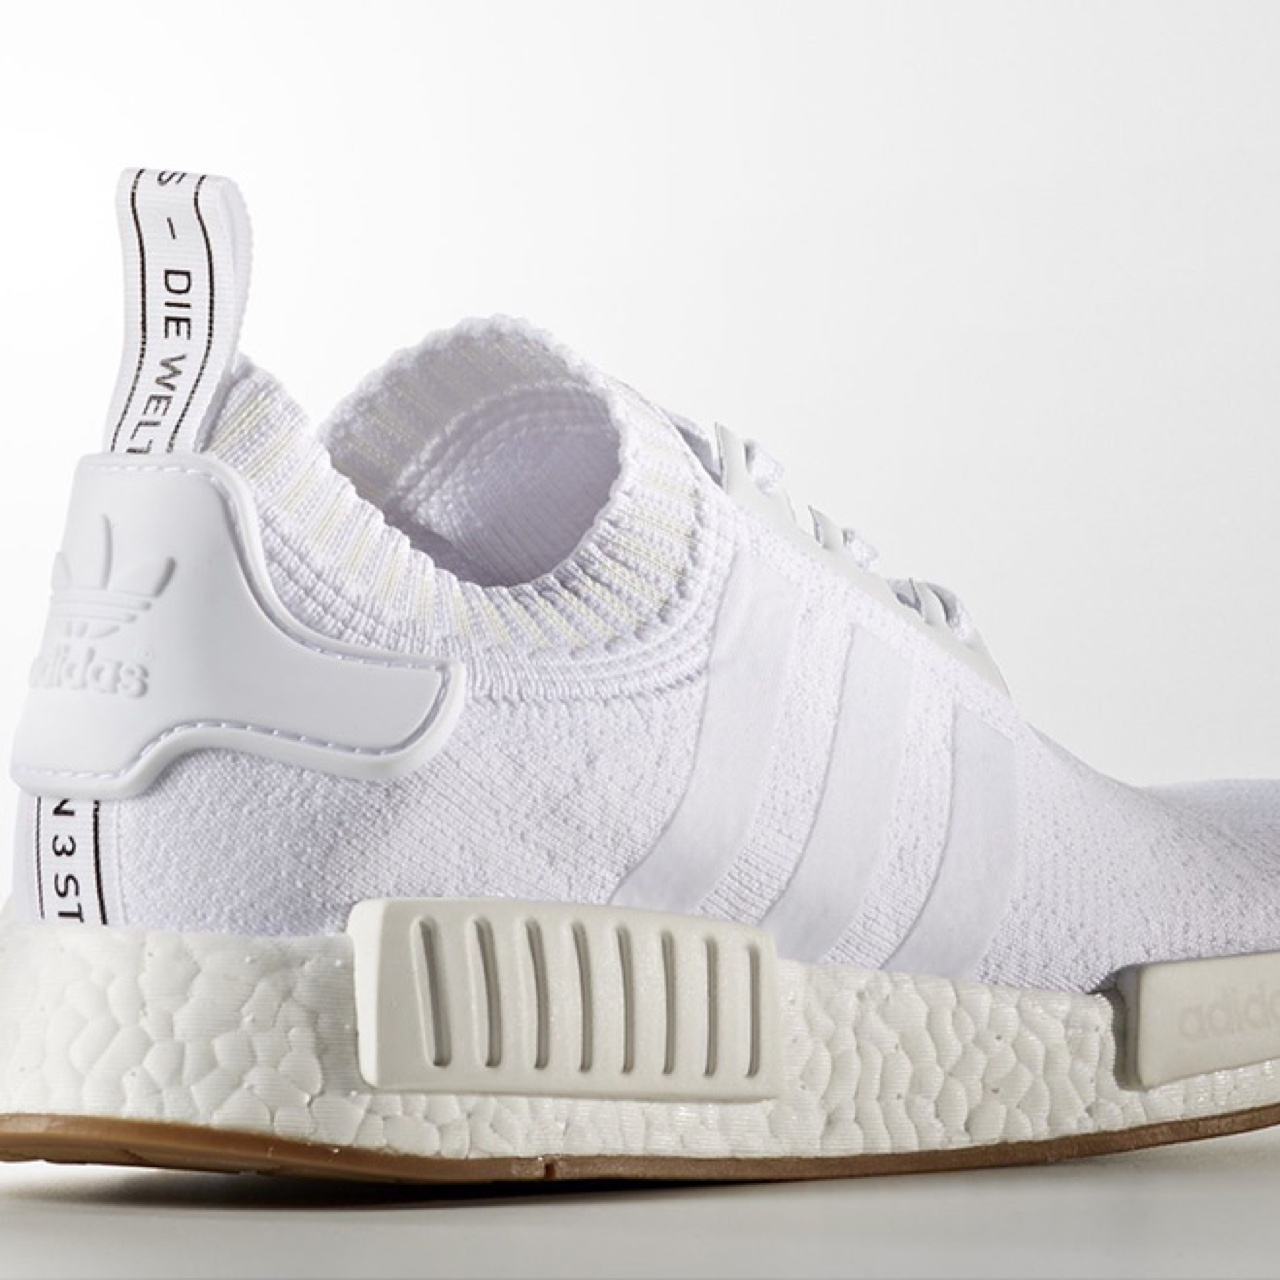 new styles 99513 ae215 Anyone interested in Adidas NMD R1 PK White Gum size ...